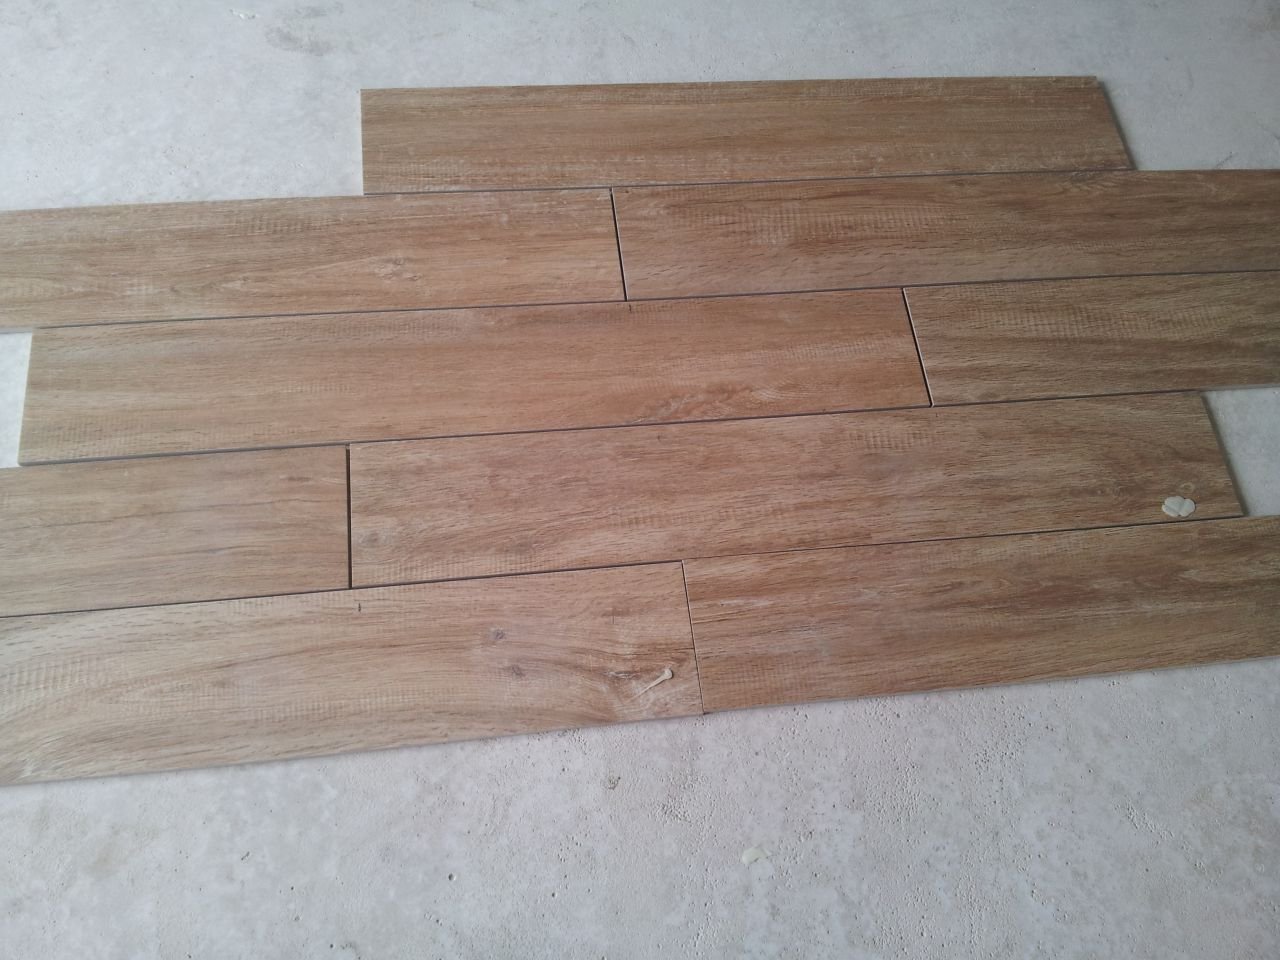 Sens et technique de pose pr carrelage imitation parquet for Poser du carrelage imitation parquet